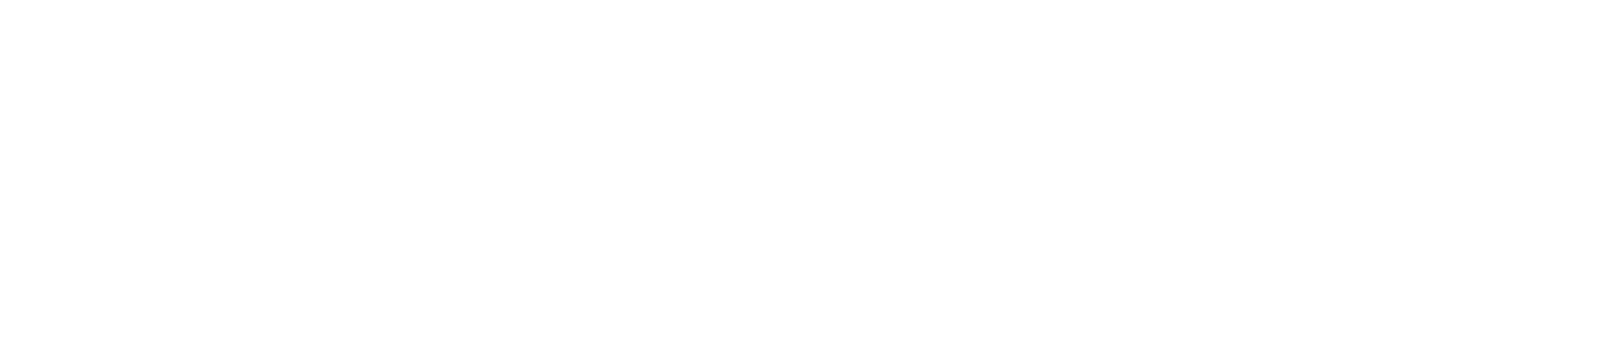 Mayday「Just Rock It 2015 TOKYO」at 日本武道館